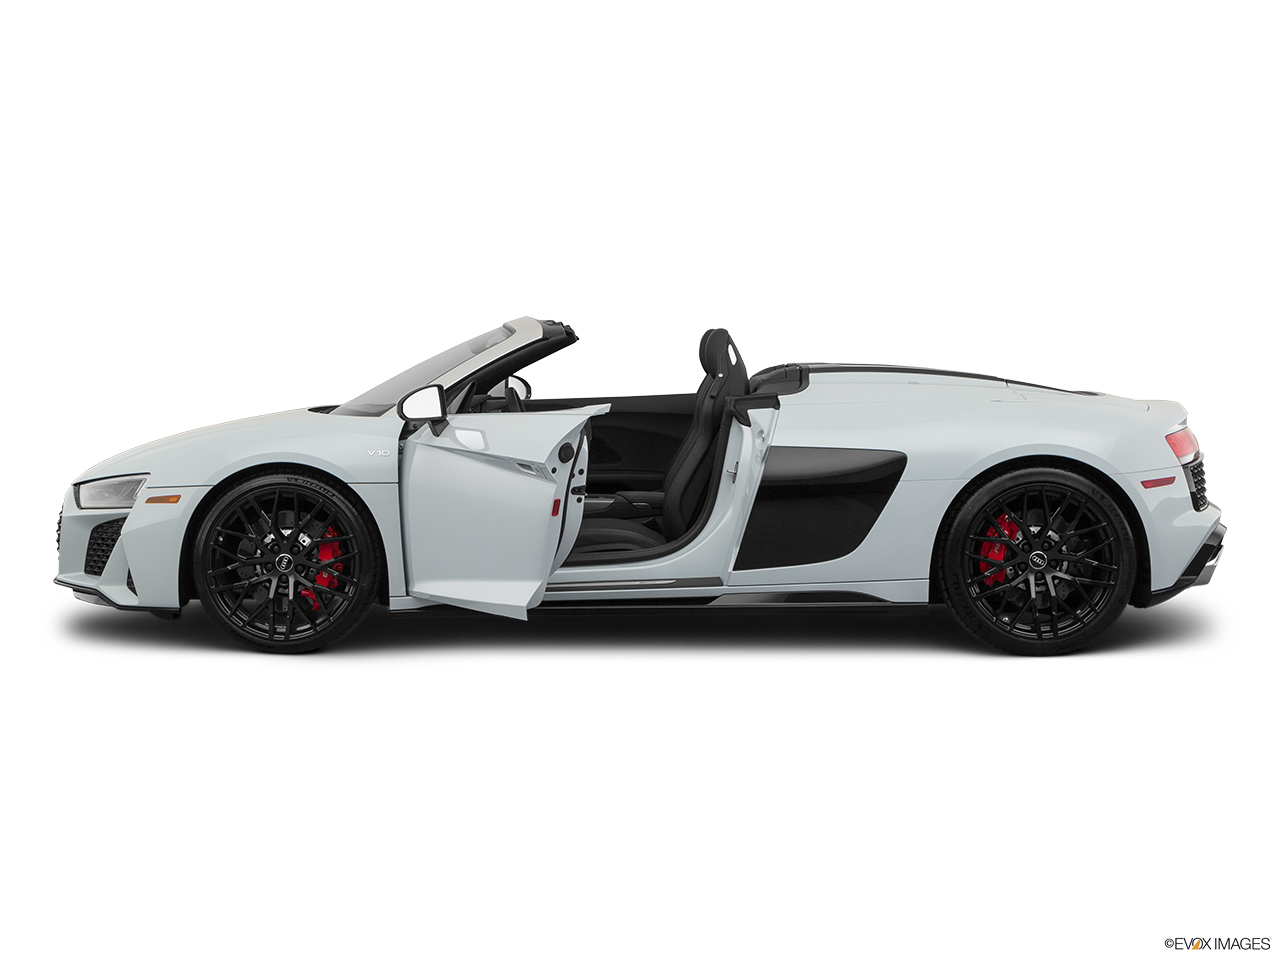 2020 Audi R8 Spyder V10 Driver's side profile with drivers side door open.